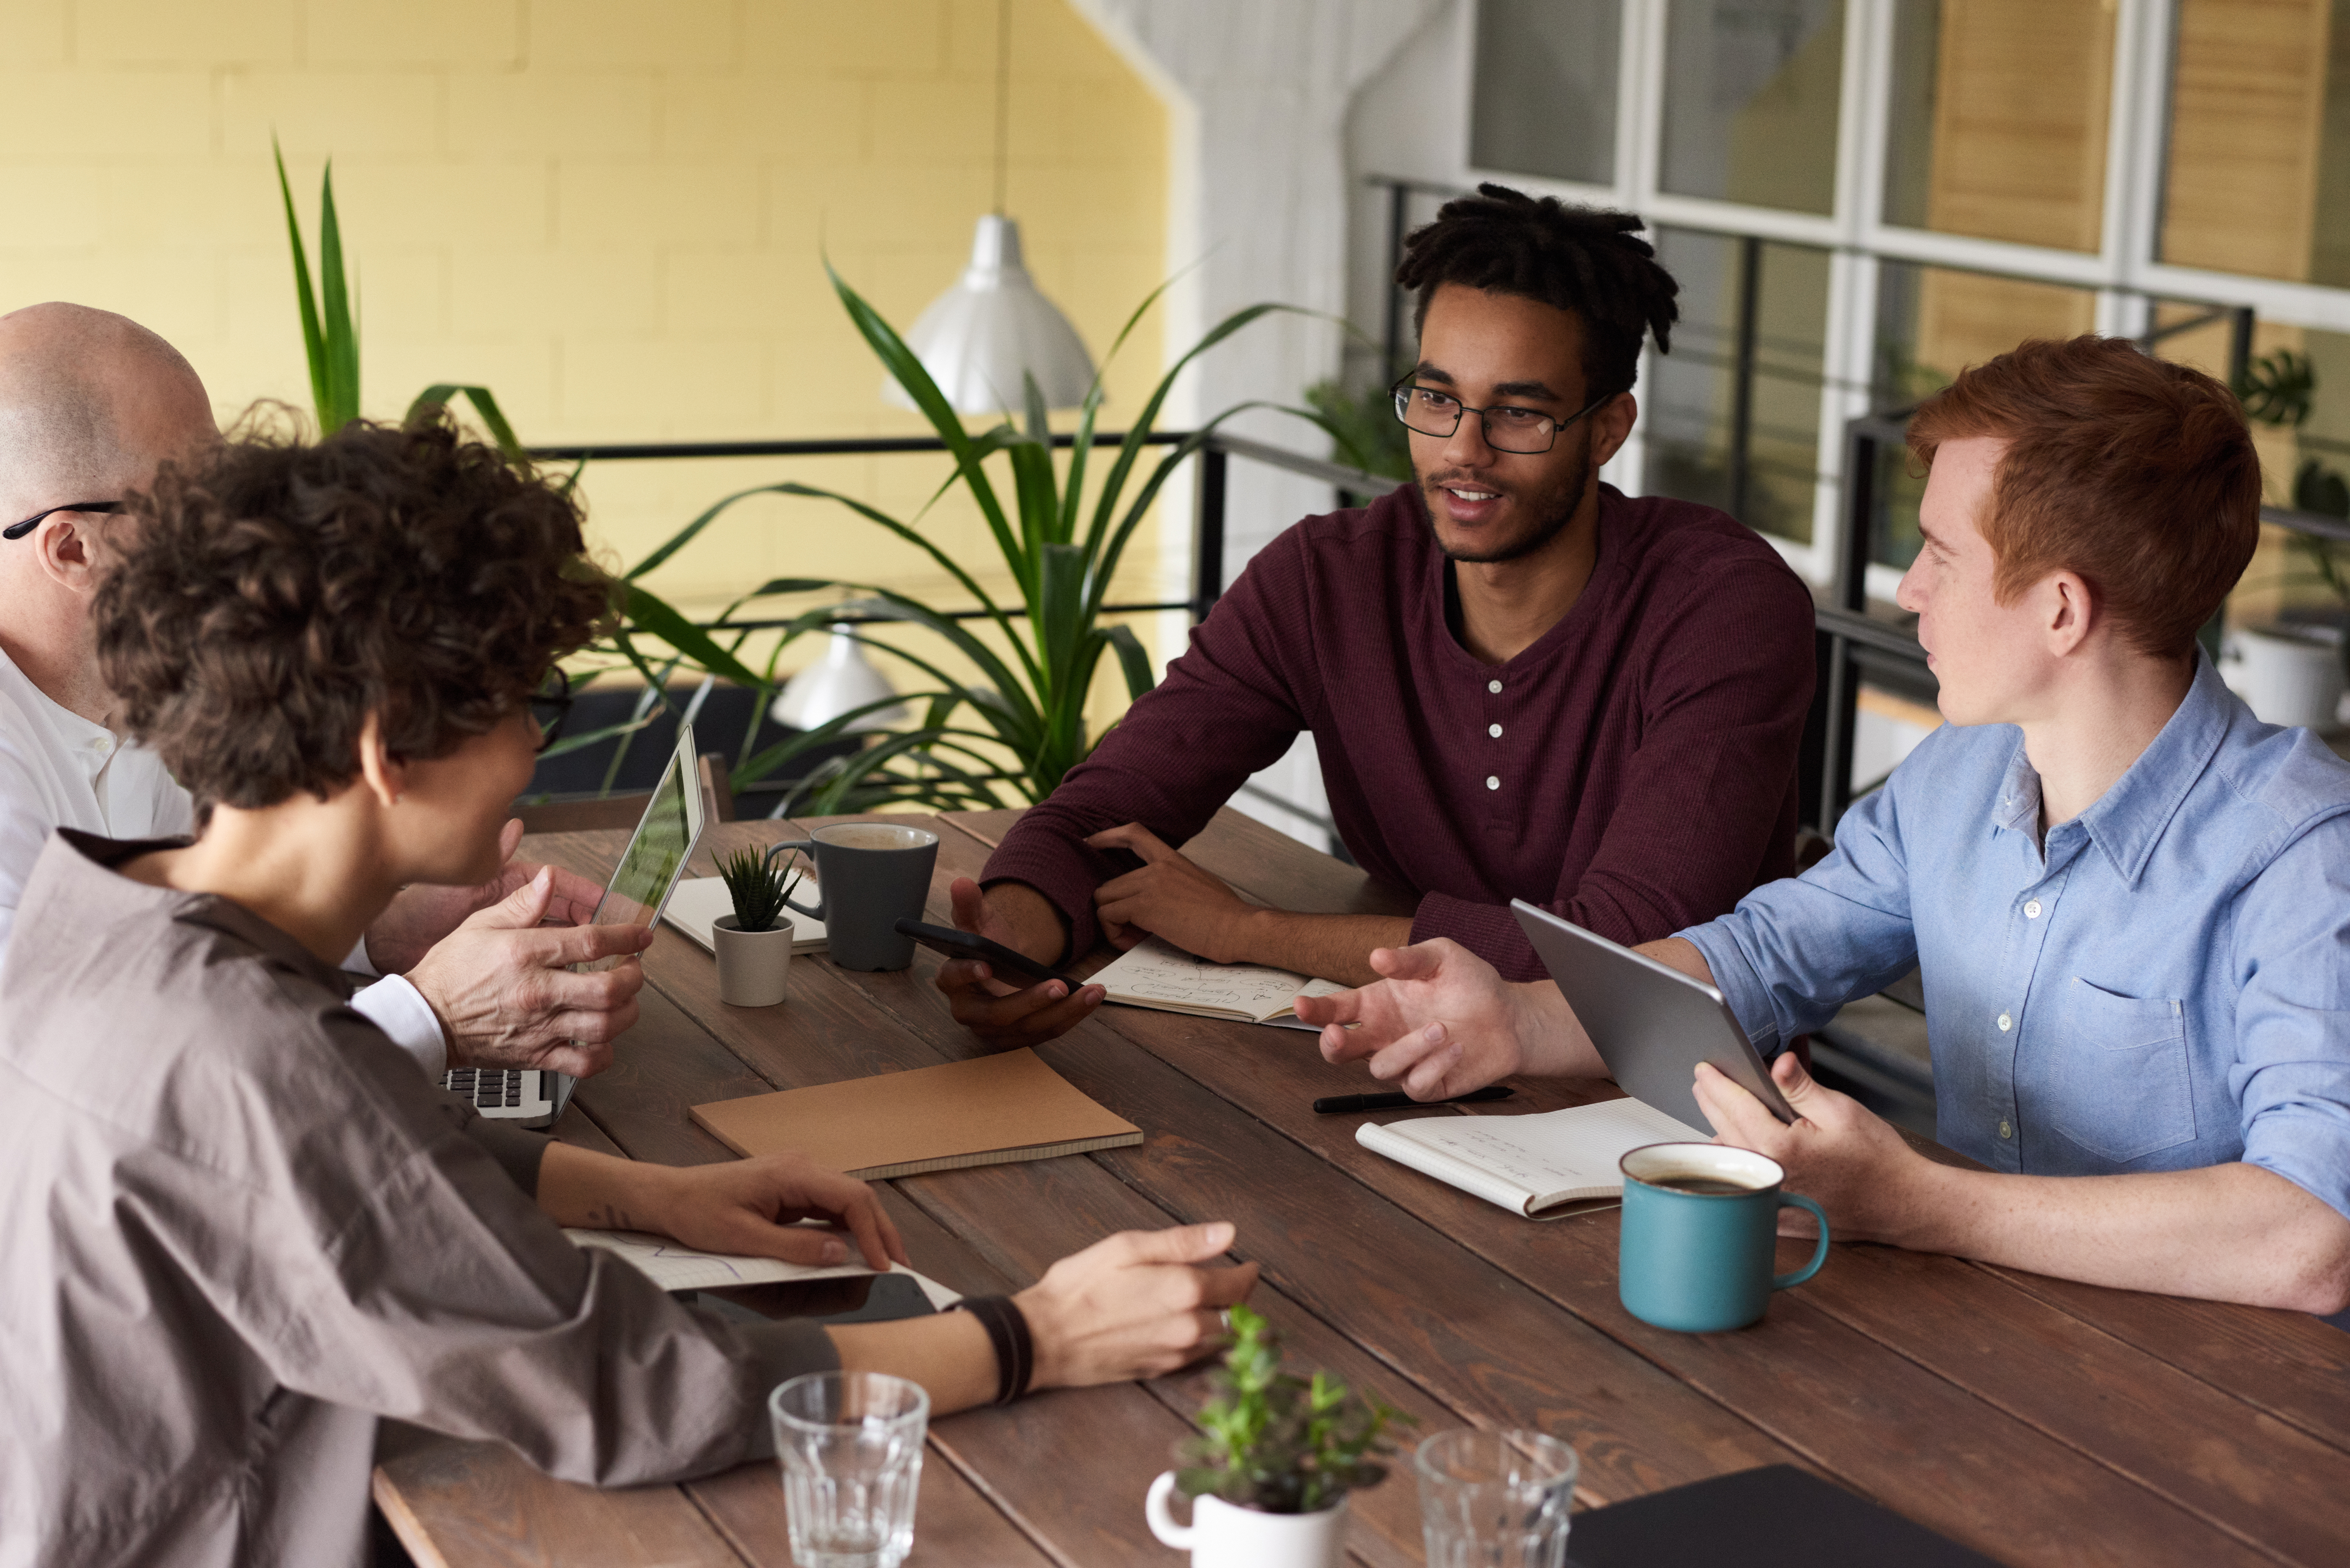 photo Of People Leaning On Wooden Table